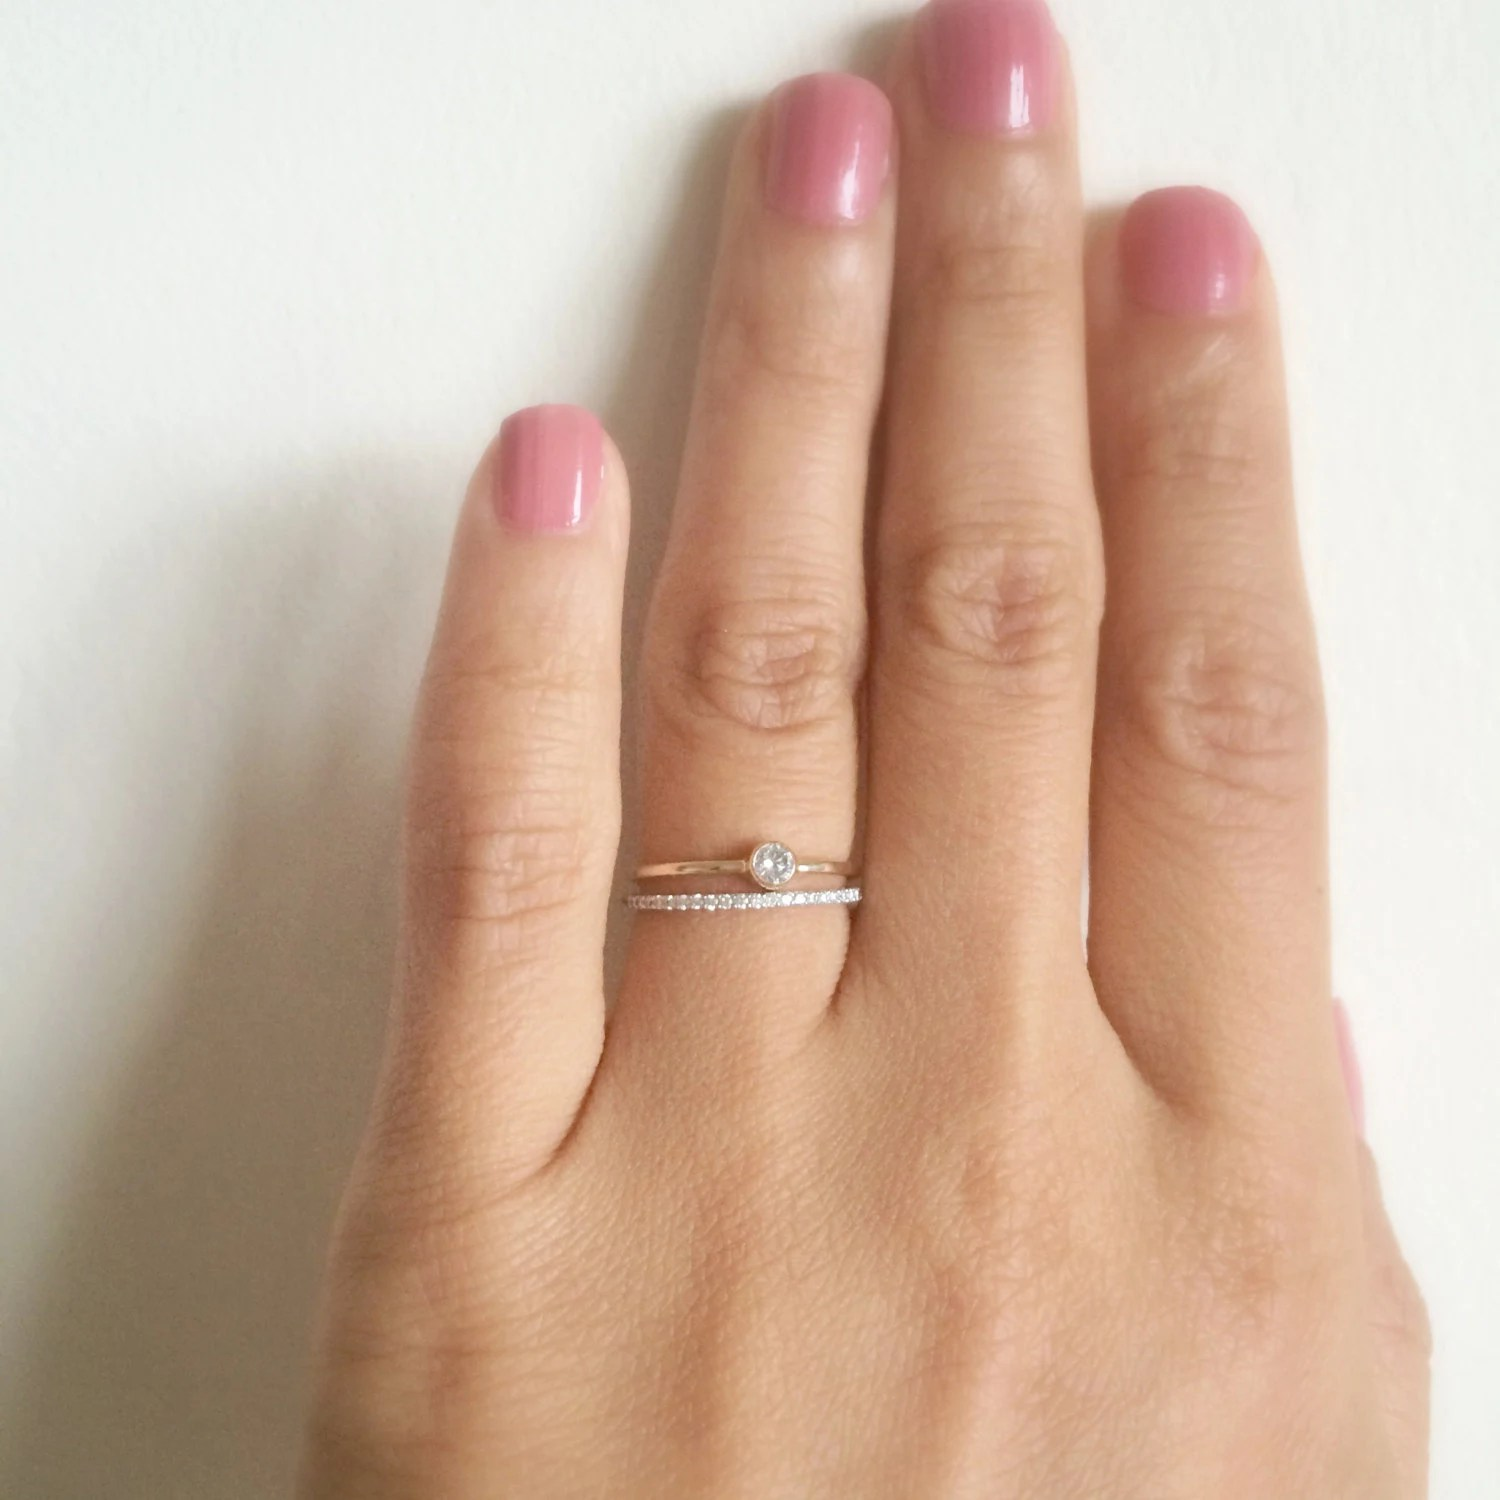 Dainty Engagement Ring 10 CT SOLID 14k gold Dainty Diamond